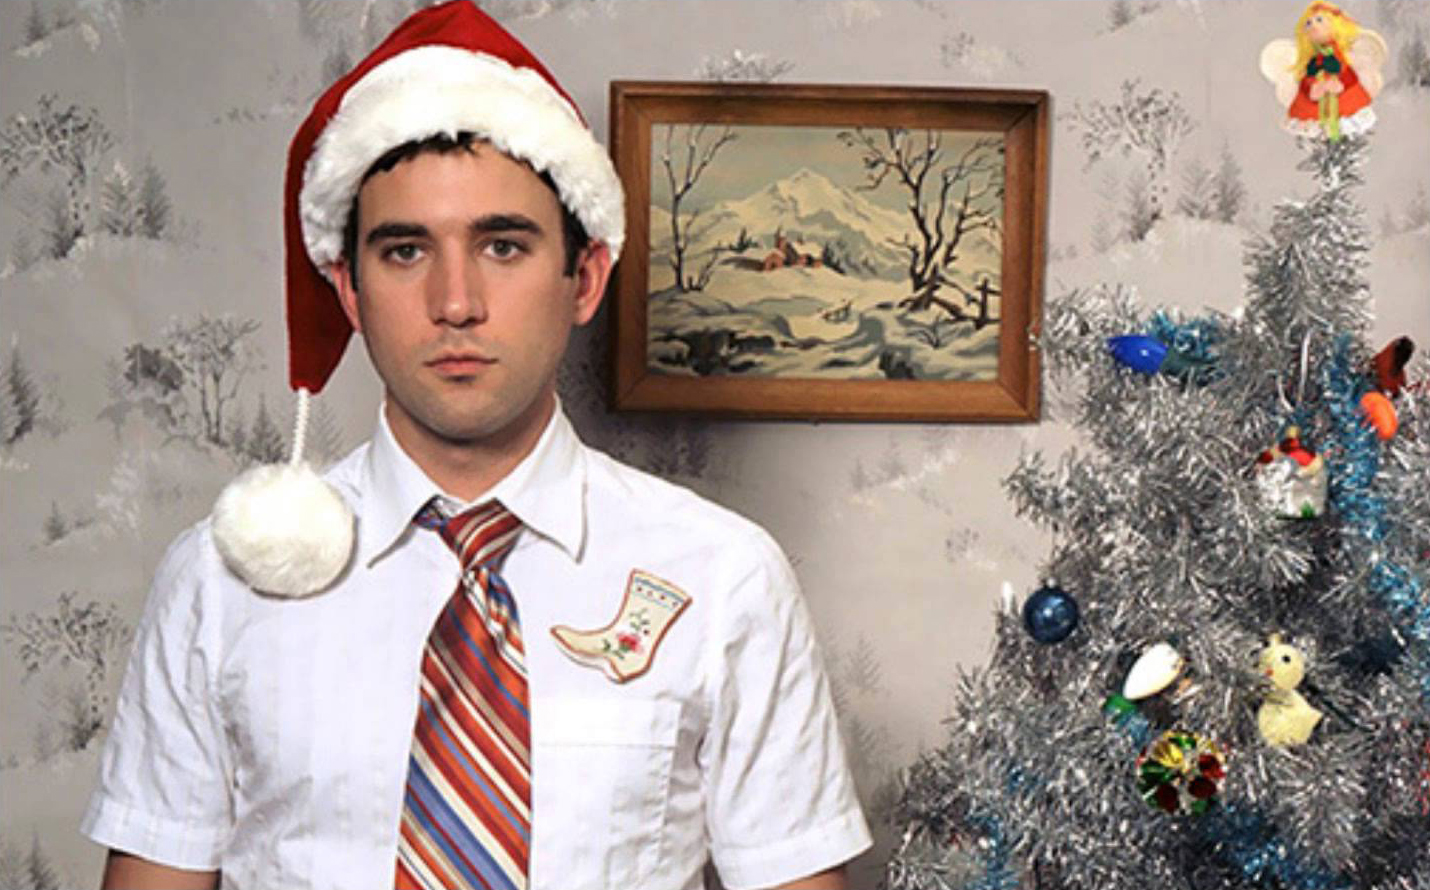 %22only-at-christmas-time%22-sufjan-stevens